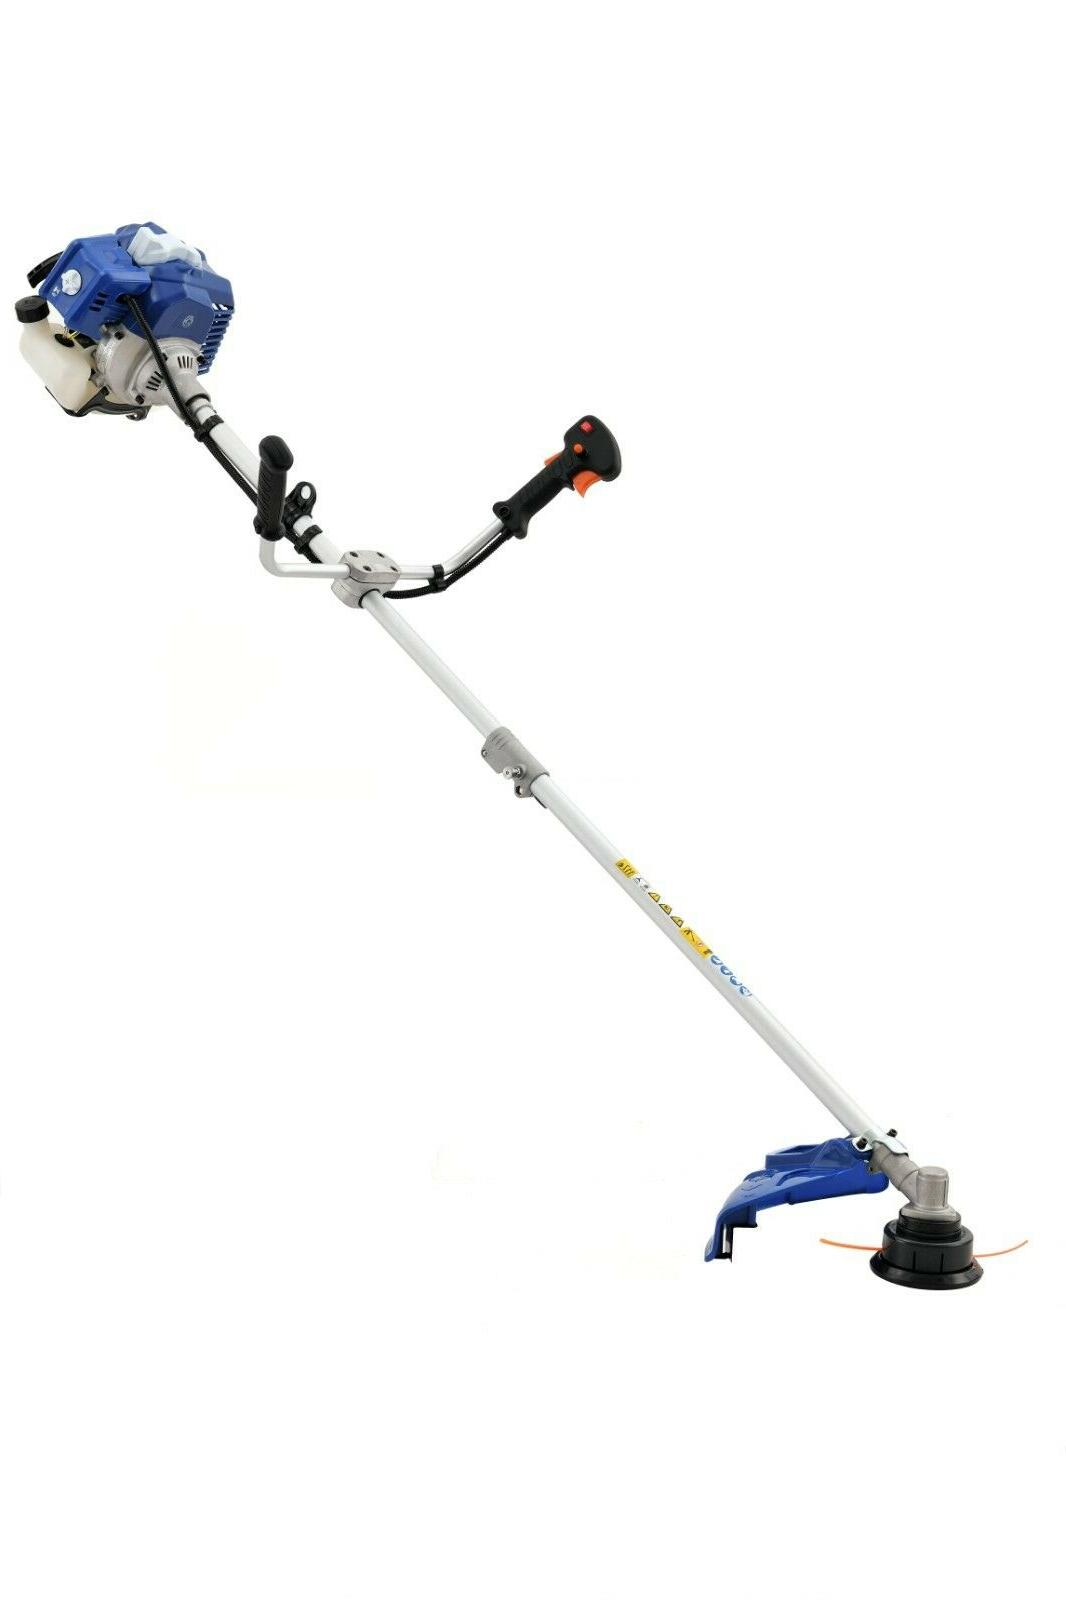 52cc in Straight Shaft Brush Trimmer